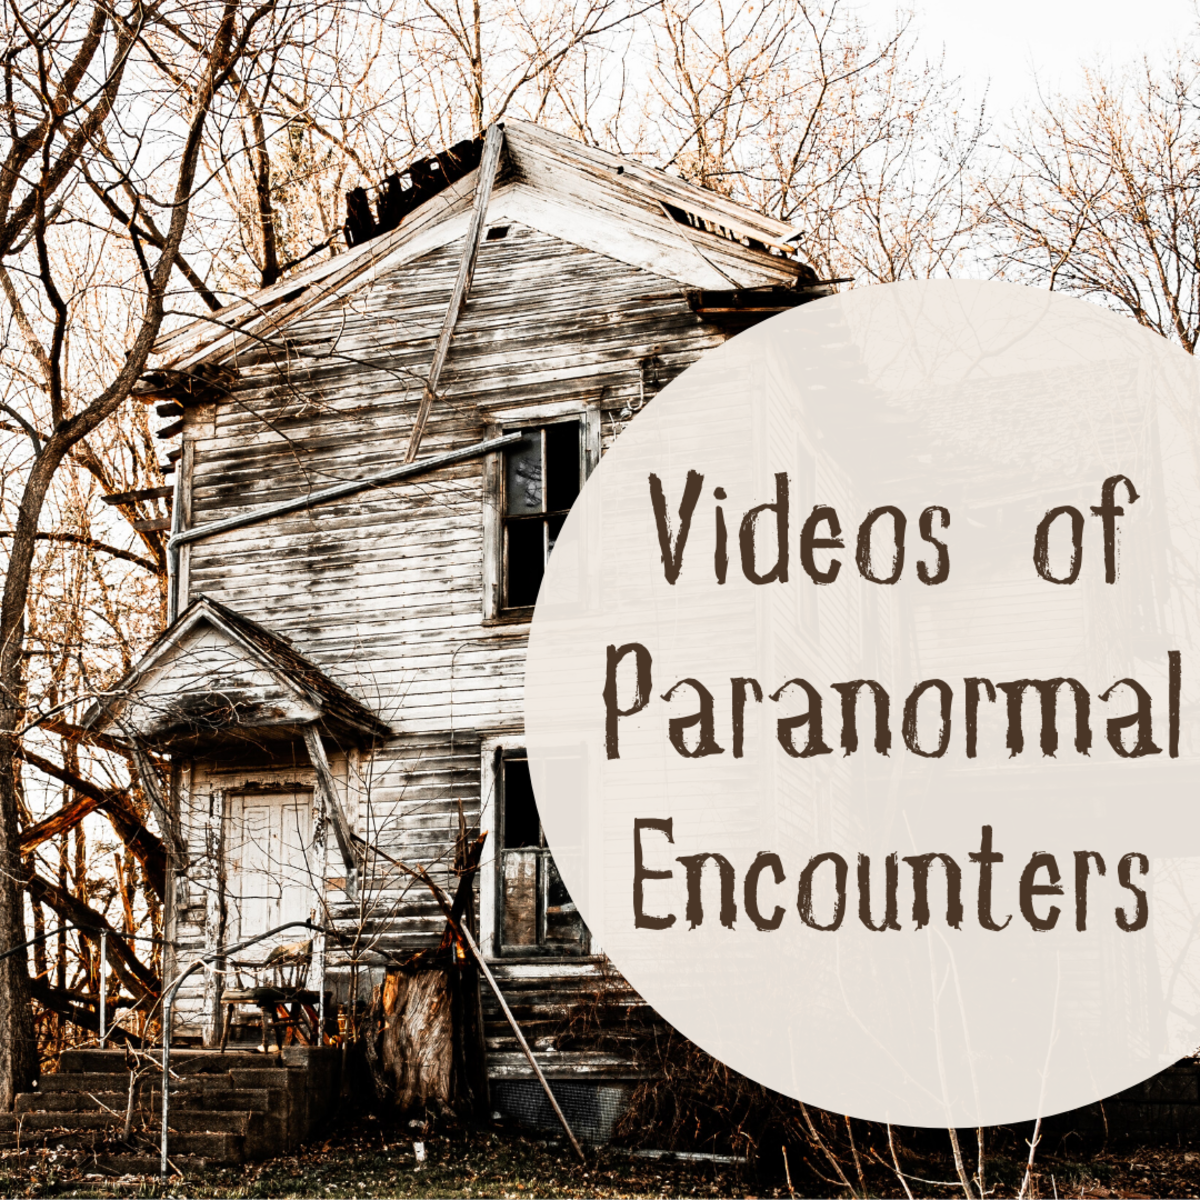 Do Ghosts Exist? 5 Paranormal Videos With Footage of Ghosts